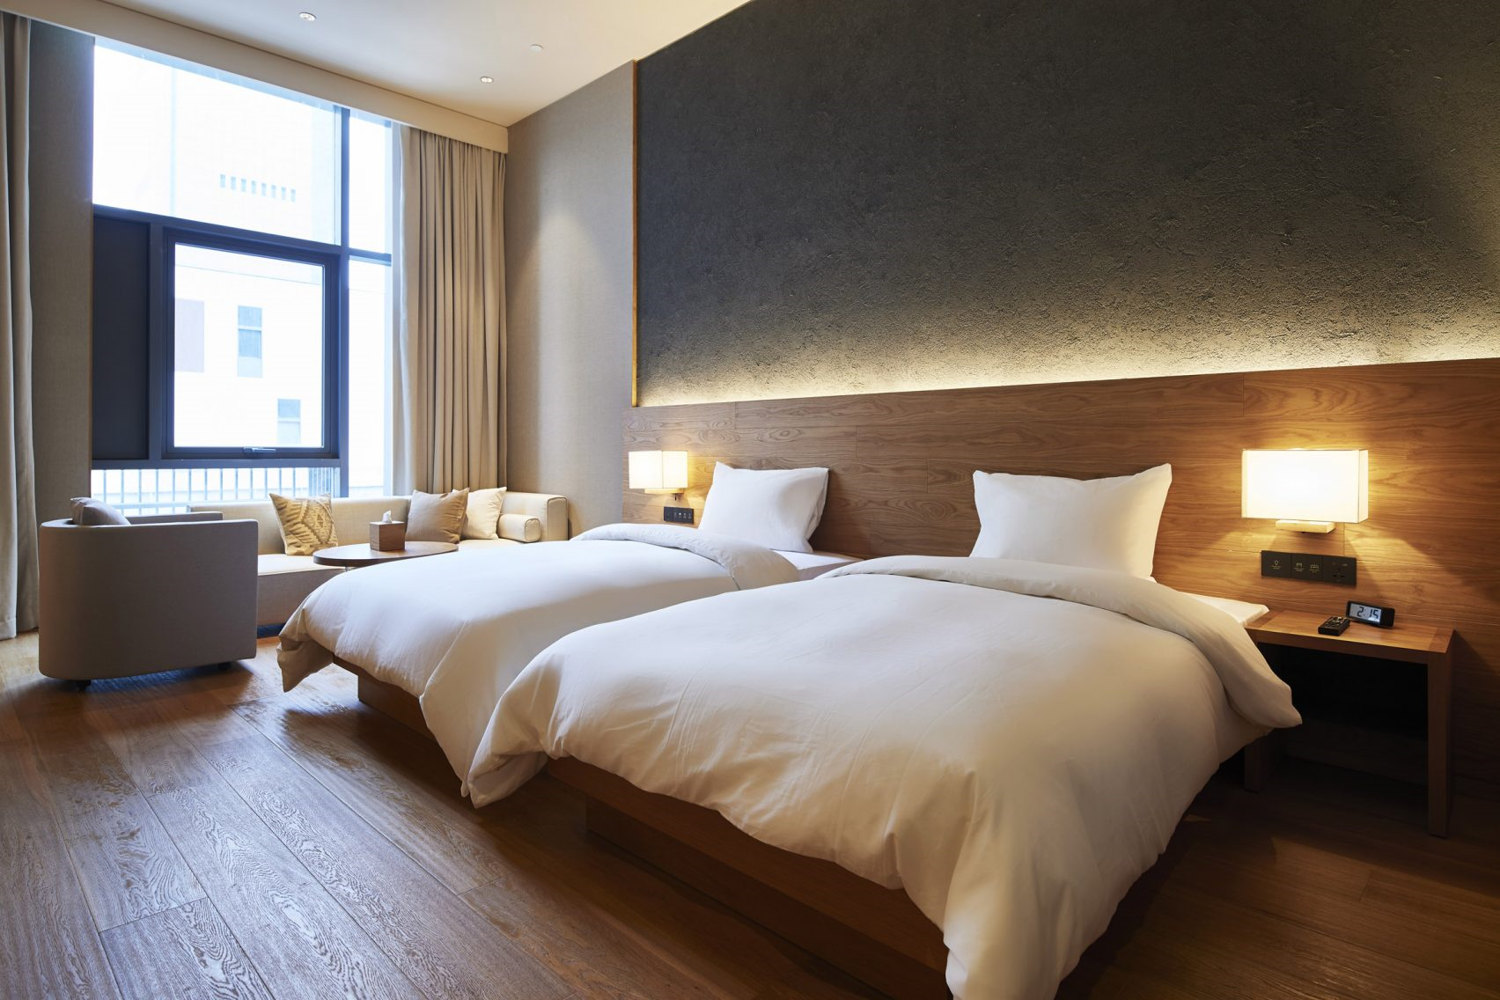 Design Interieur Blog Hotel Room Design Trends What Travellers Want In Their Bedroom